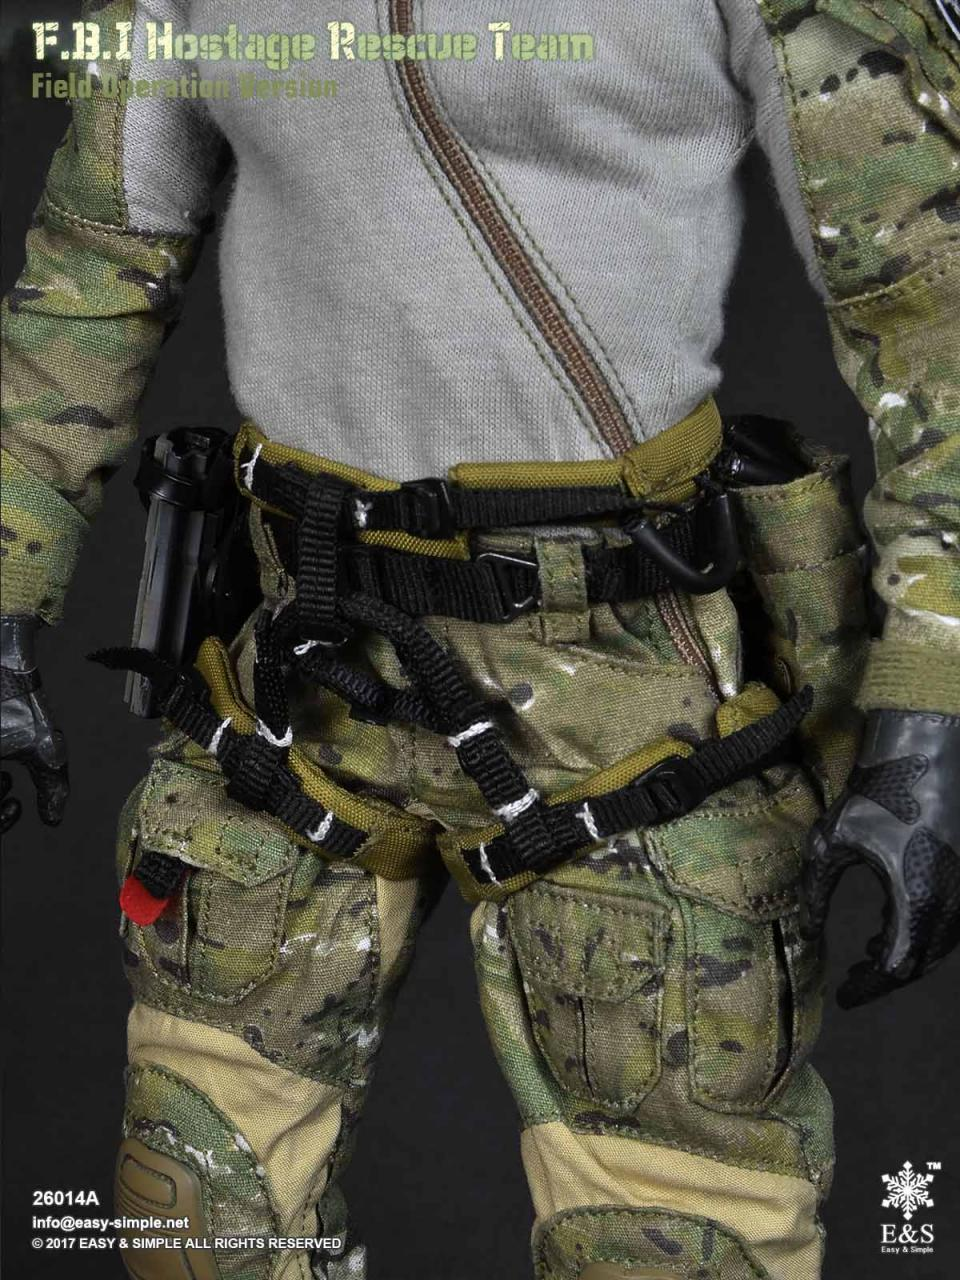 Easy&Simple 26014 FBI Hostage Rescue Team (2 Versions)-26014a-25-jpg